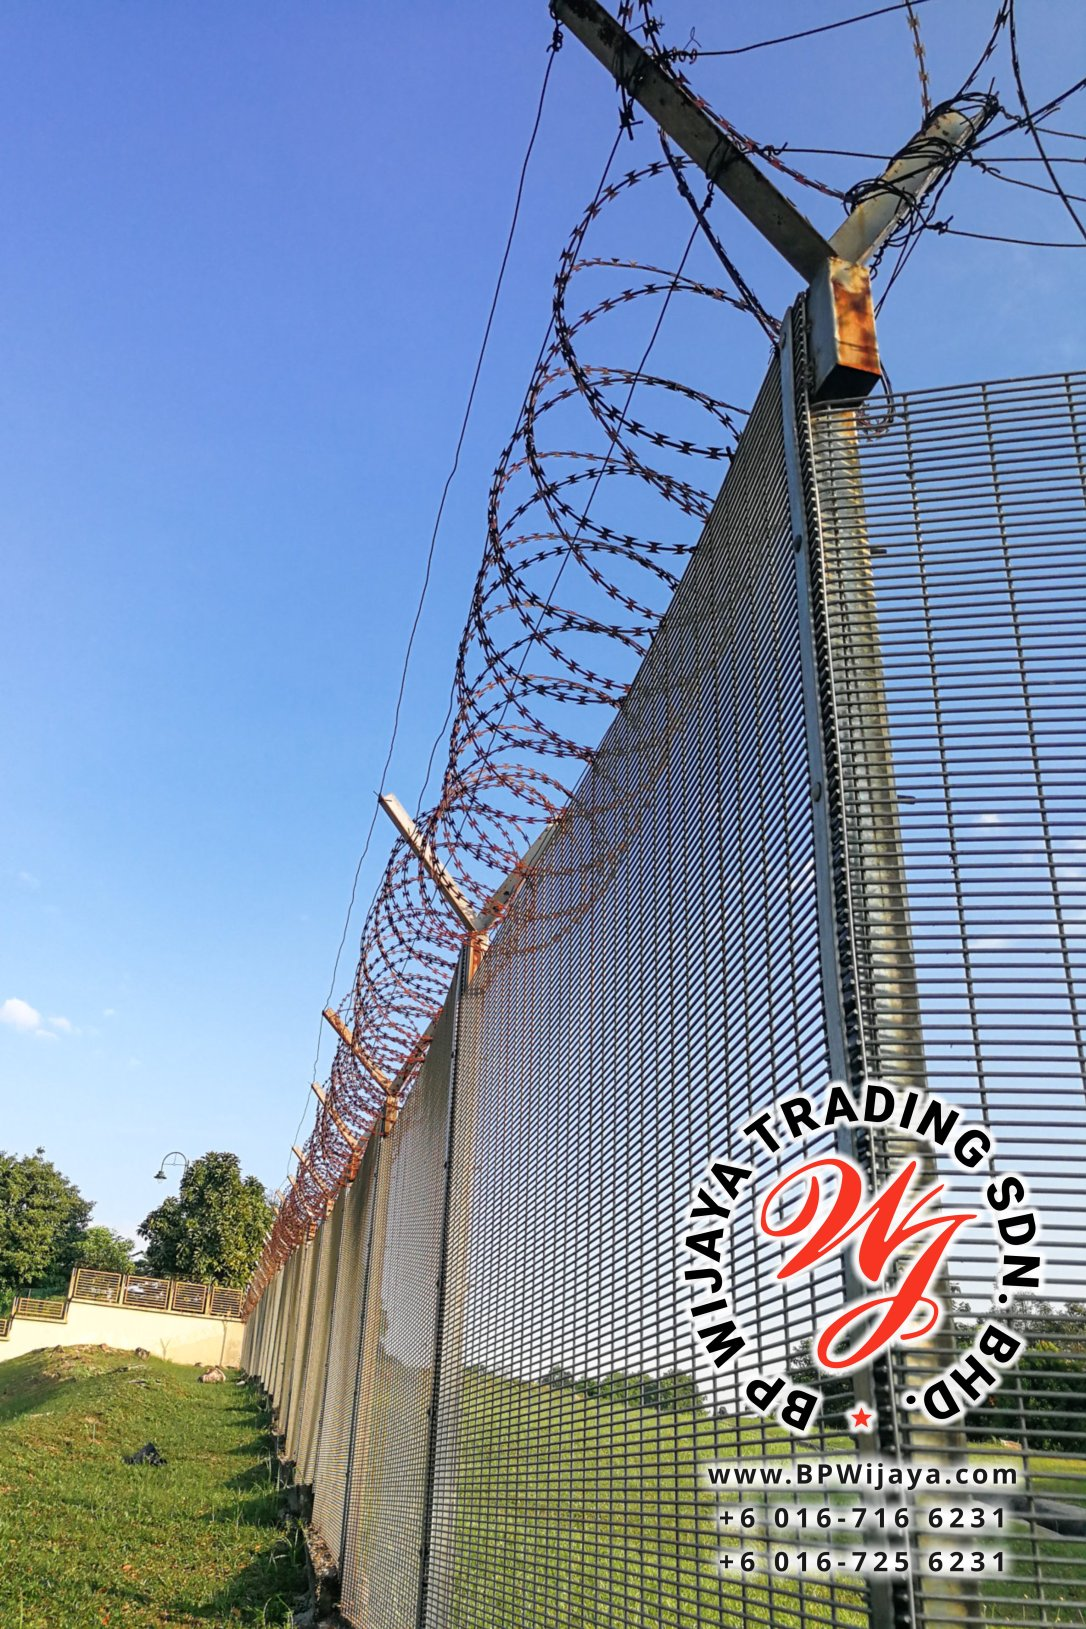 Sharp barbed wire on security fence protecti secure private spac